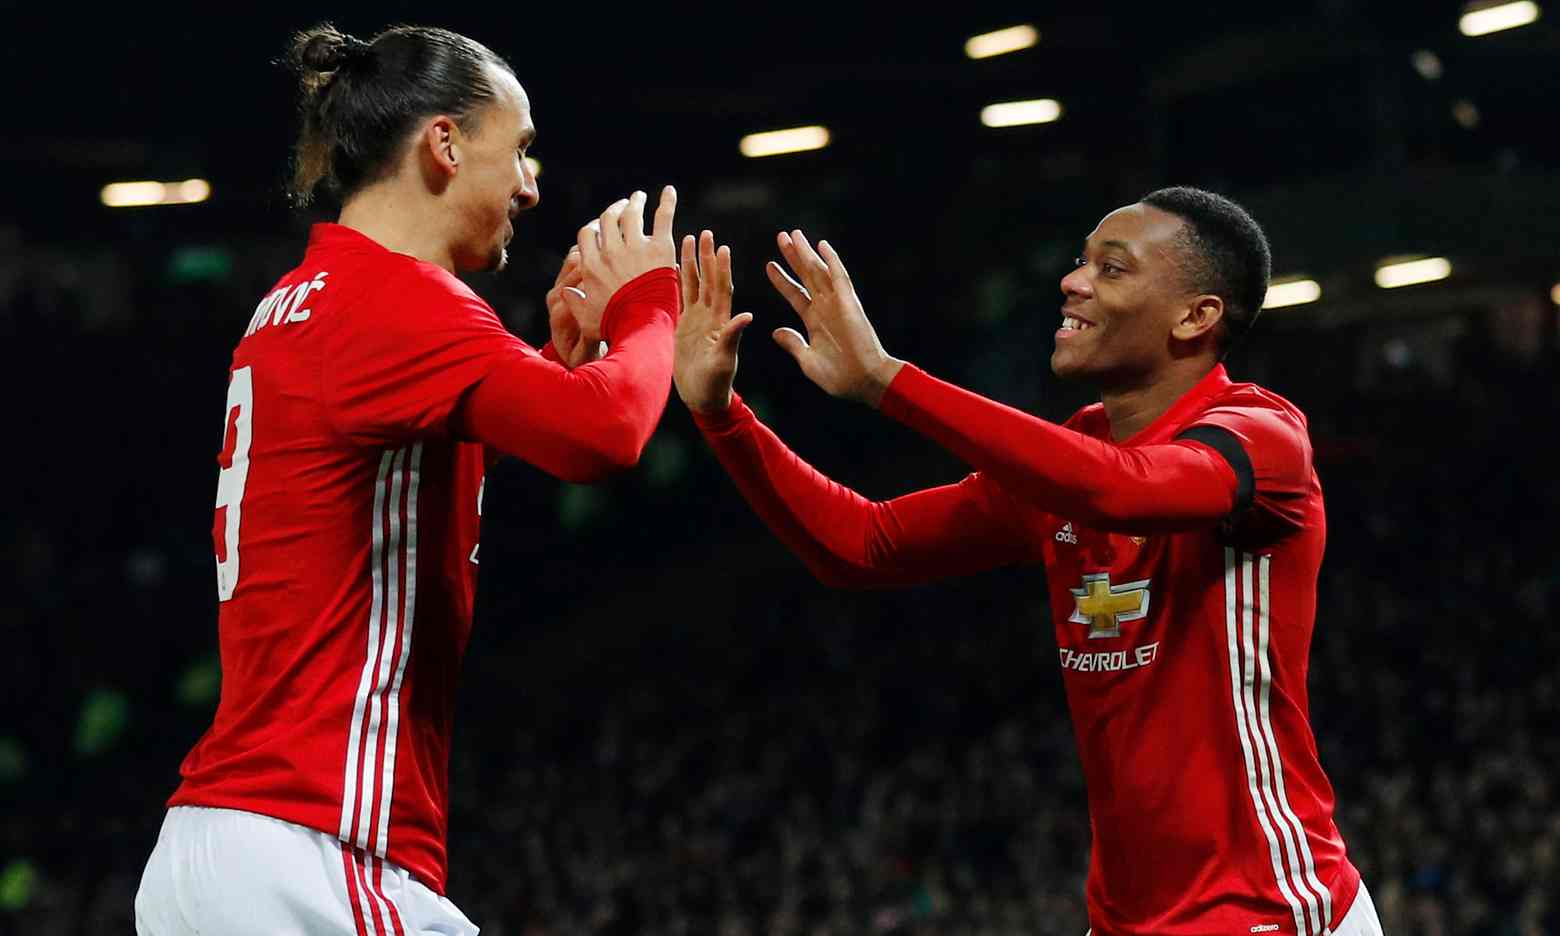 United stars of all sorts shined in their 4-1 thumping of West Ham in the EFL Cup Quarter-Final on Wednesday. Photograph by Phil Noble, Reuters.